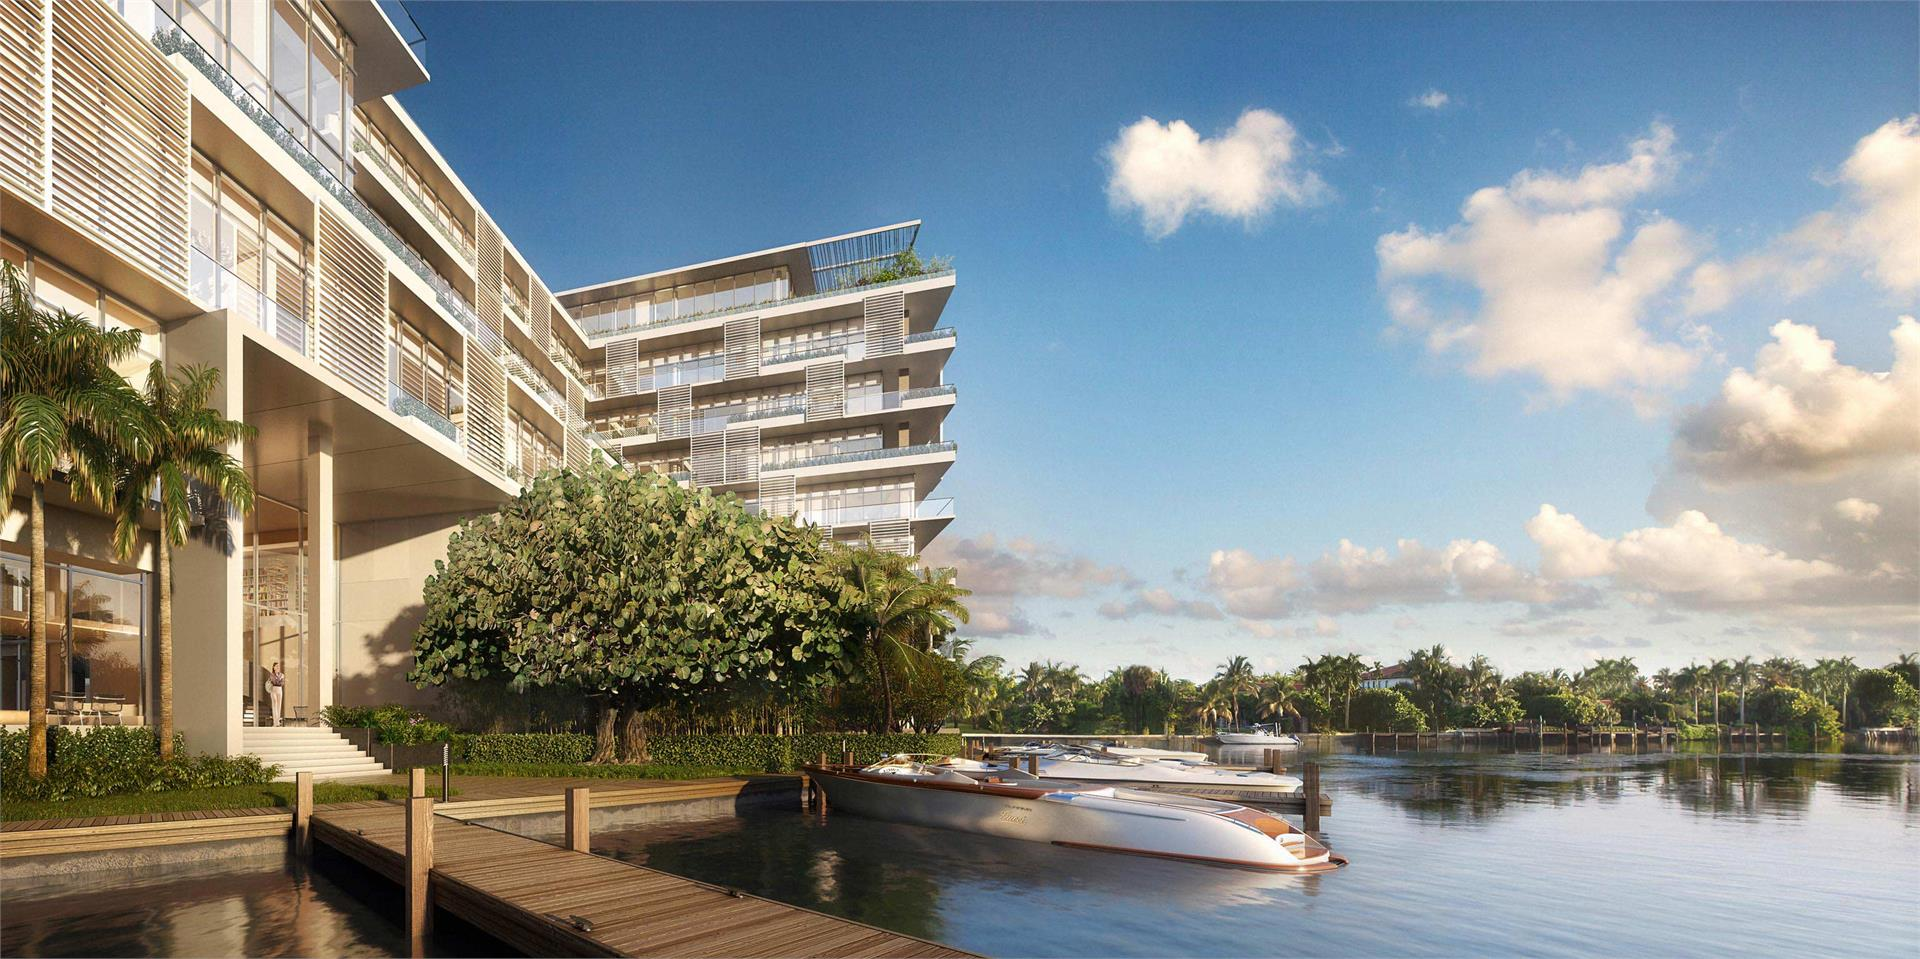 The Ritz-Carlton Residences - Image 2